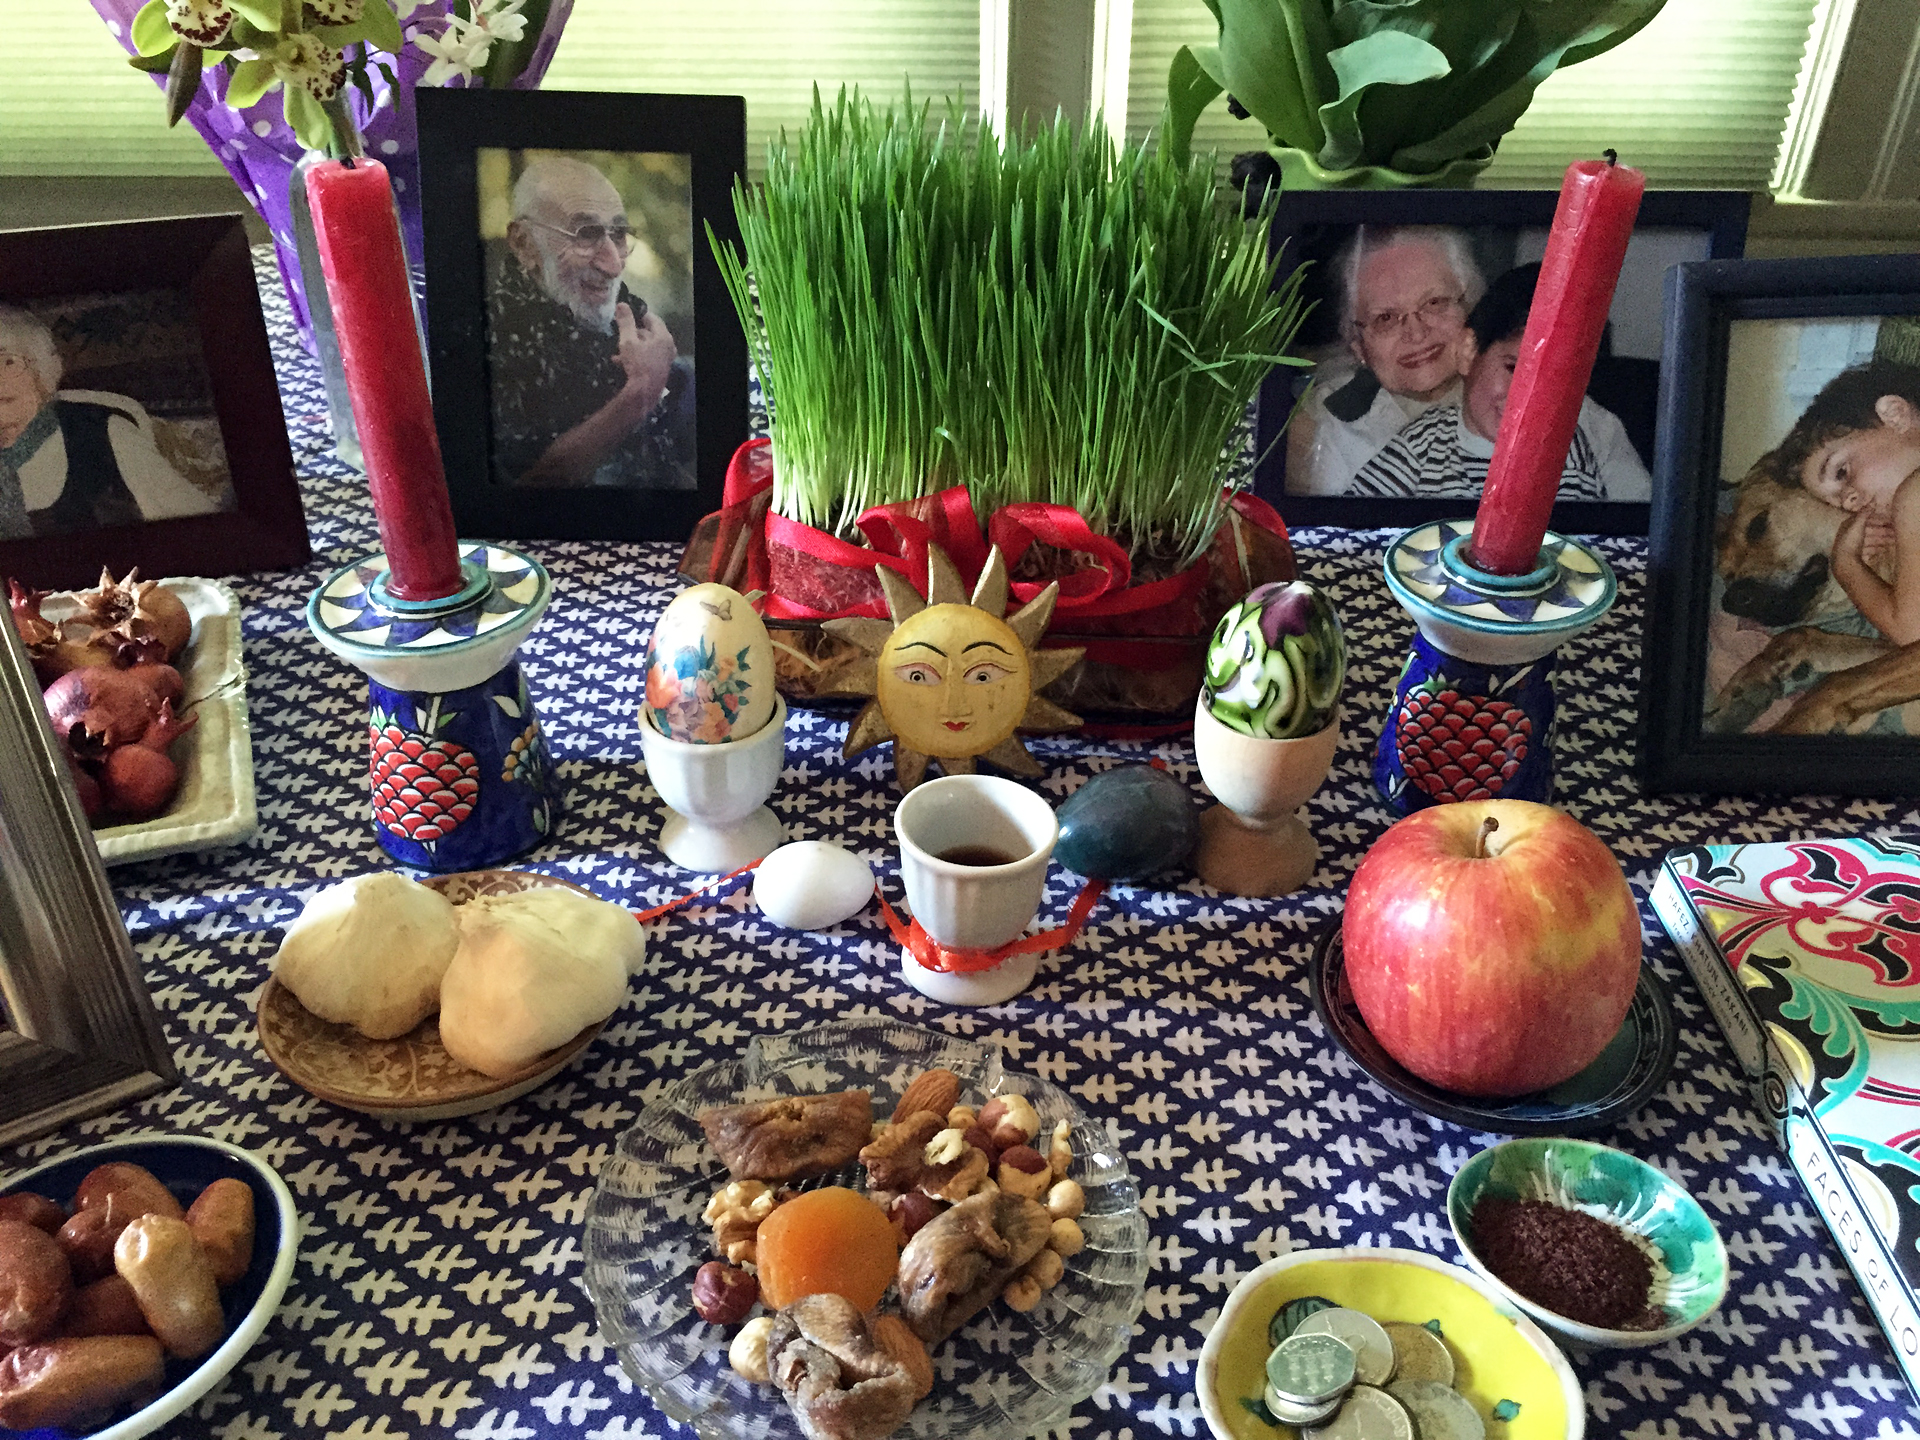 The Persian New Year begins on the first day of Spring. To celebrate, families create a 'haftsin,' a table decorated elaborately with different foods like fresh apples and sprouted herbs.